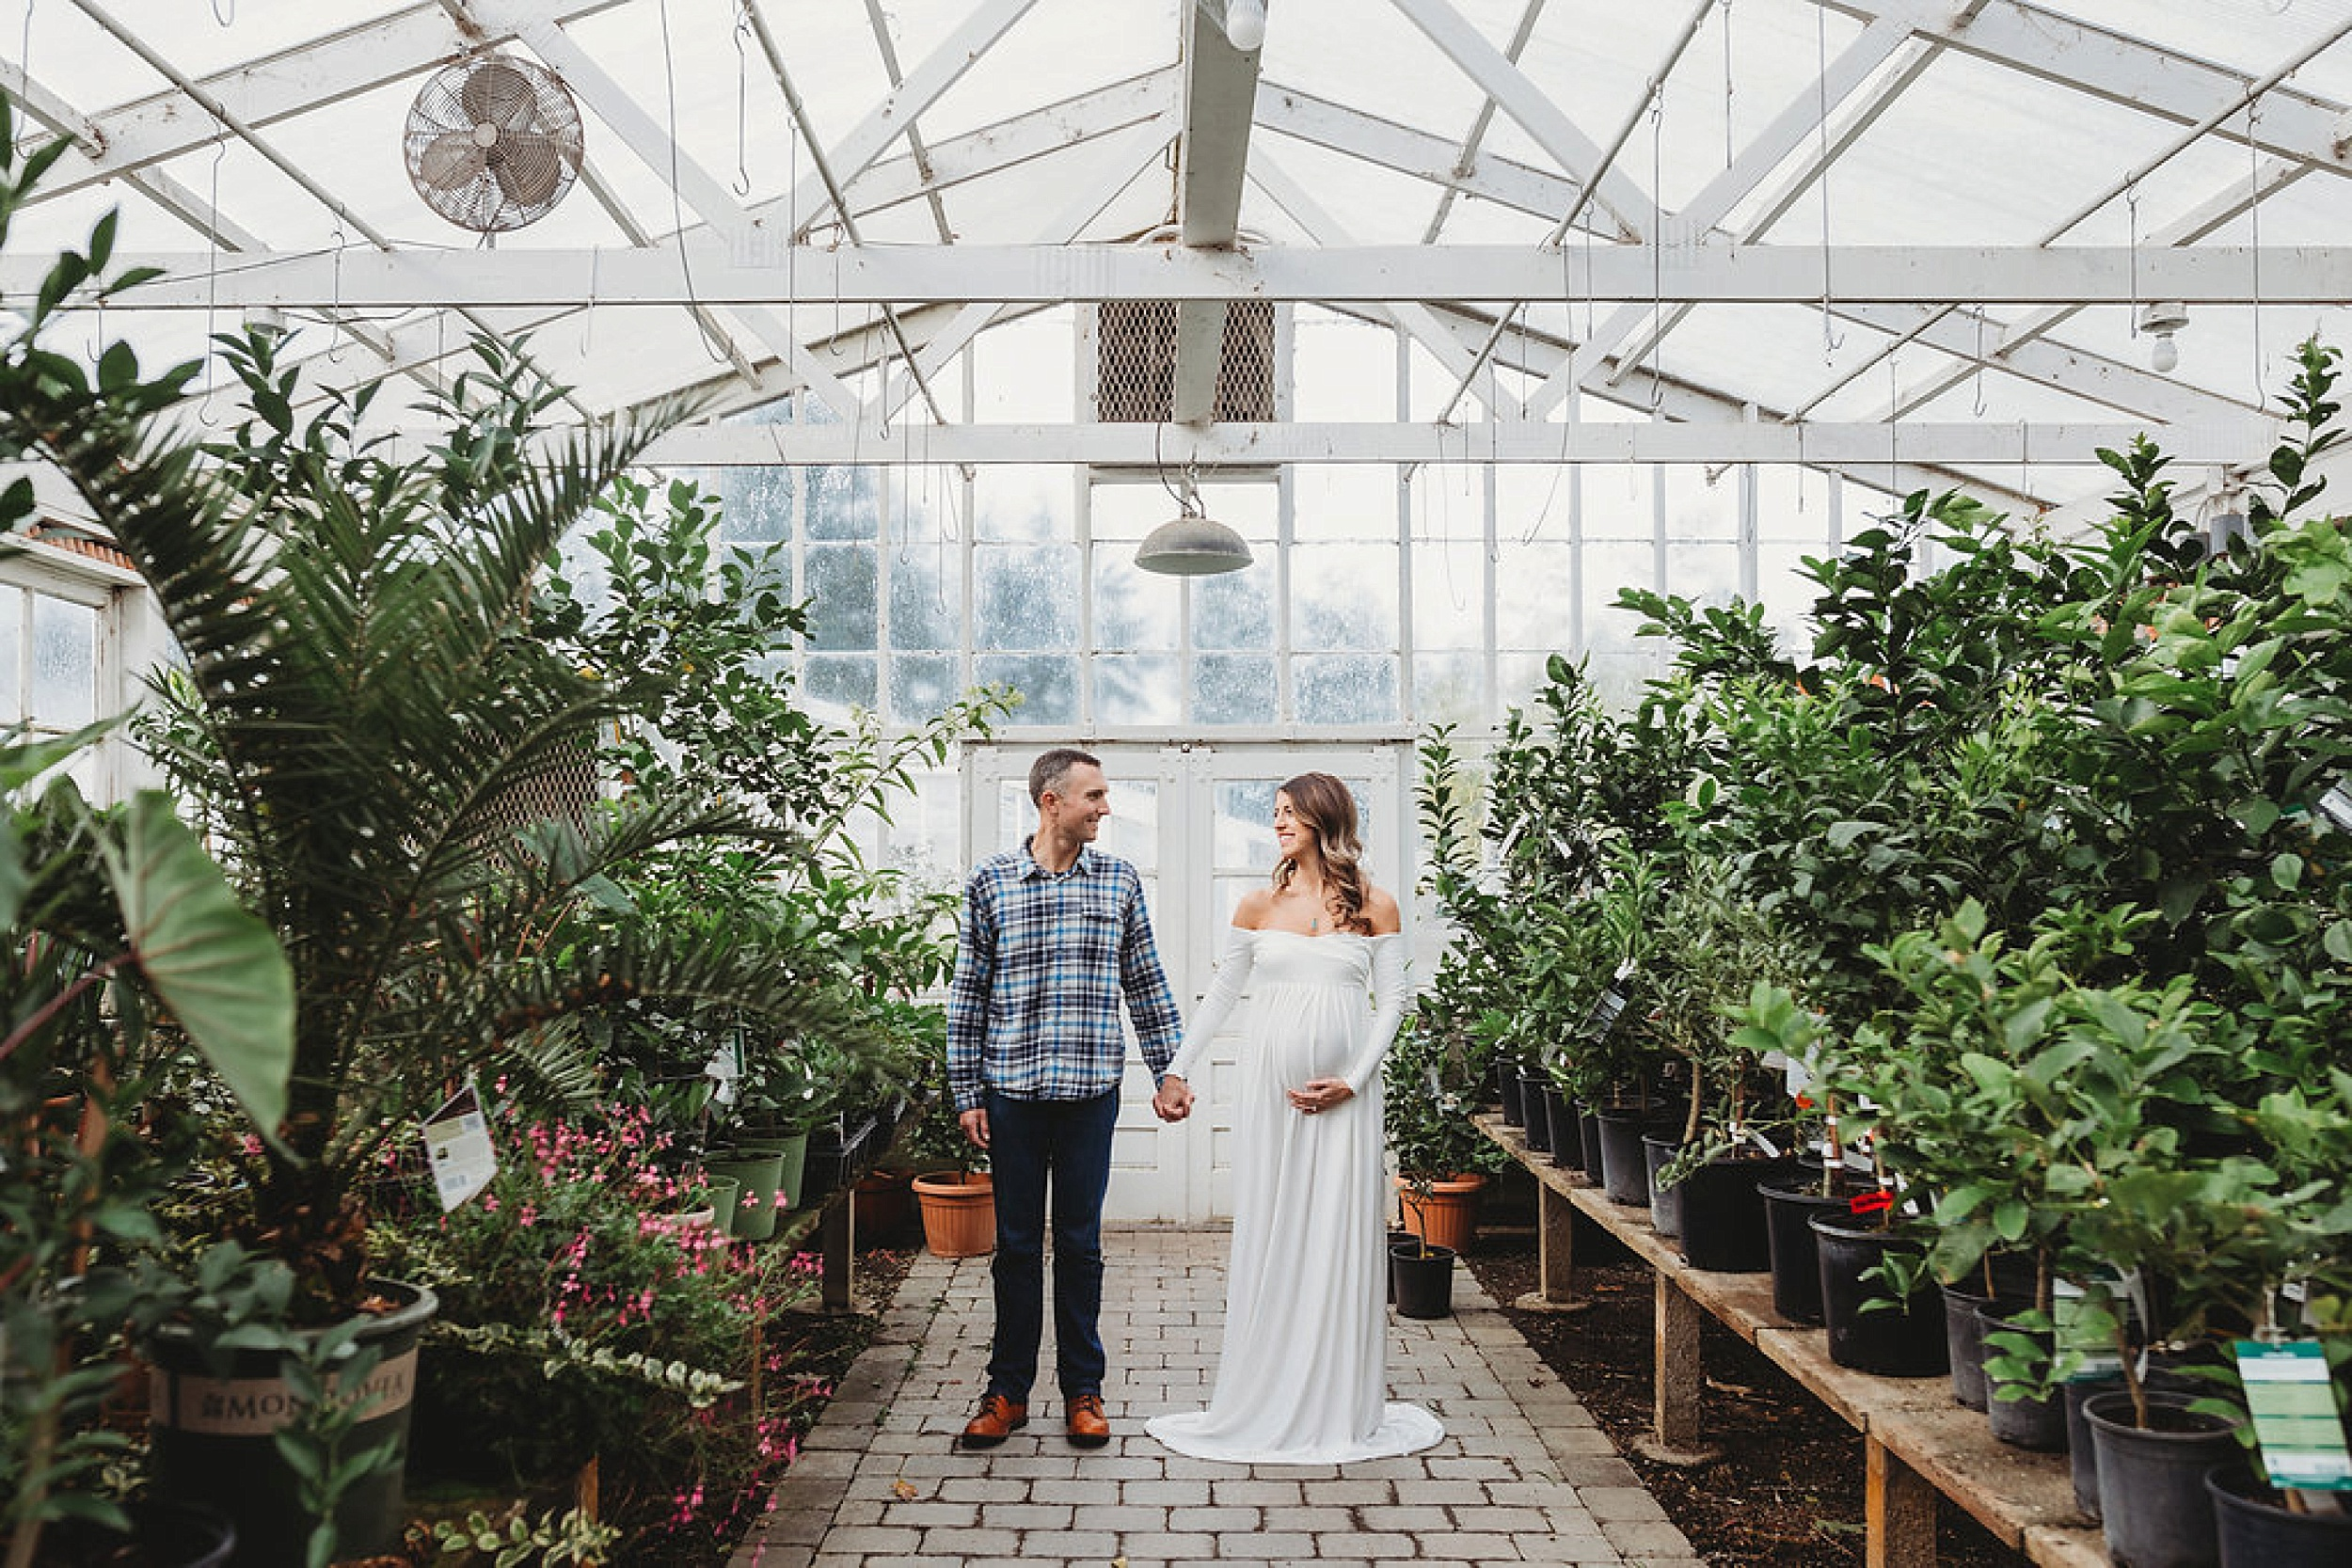 Organic Greenhouse Maternity Pictures in Washington » Beyond The Wanderlust 62922f8e42